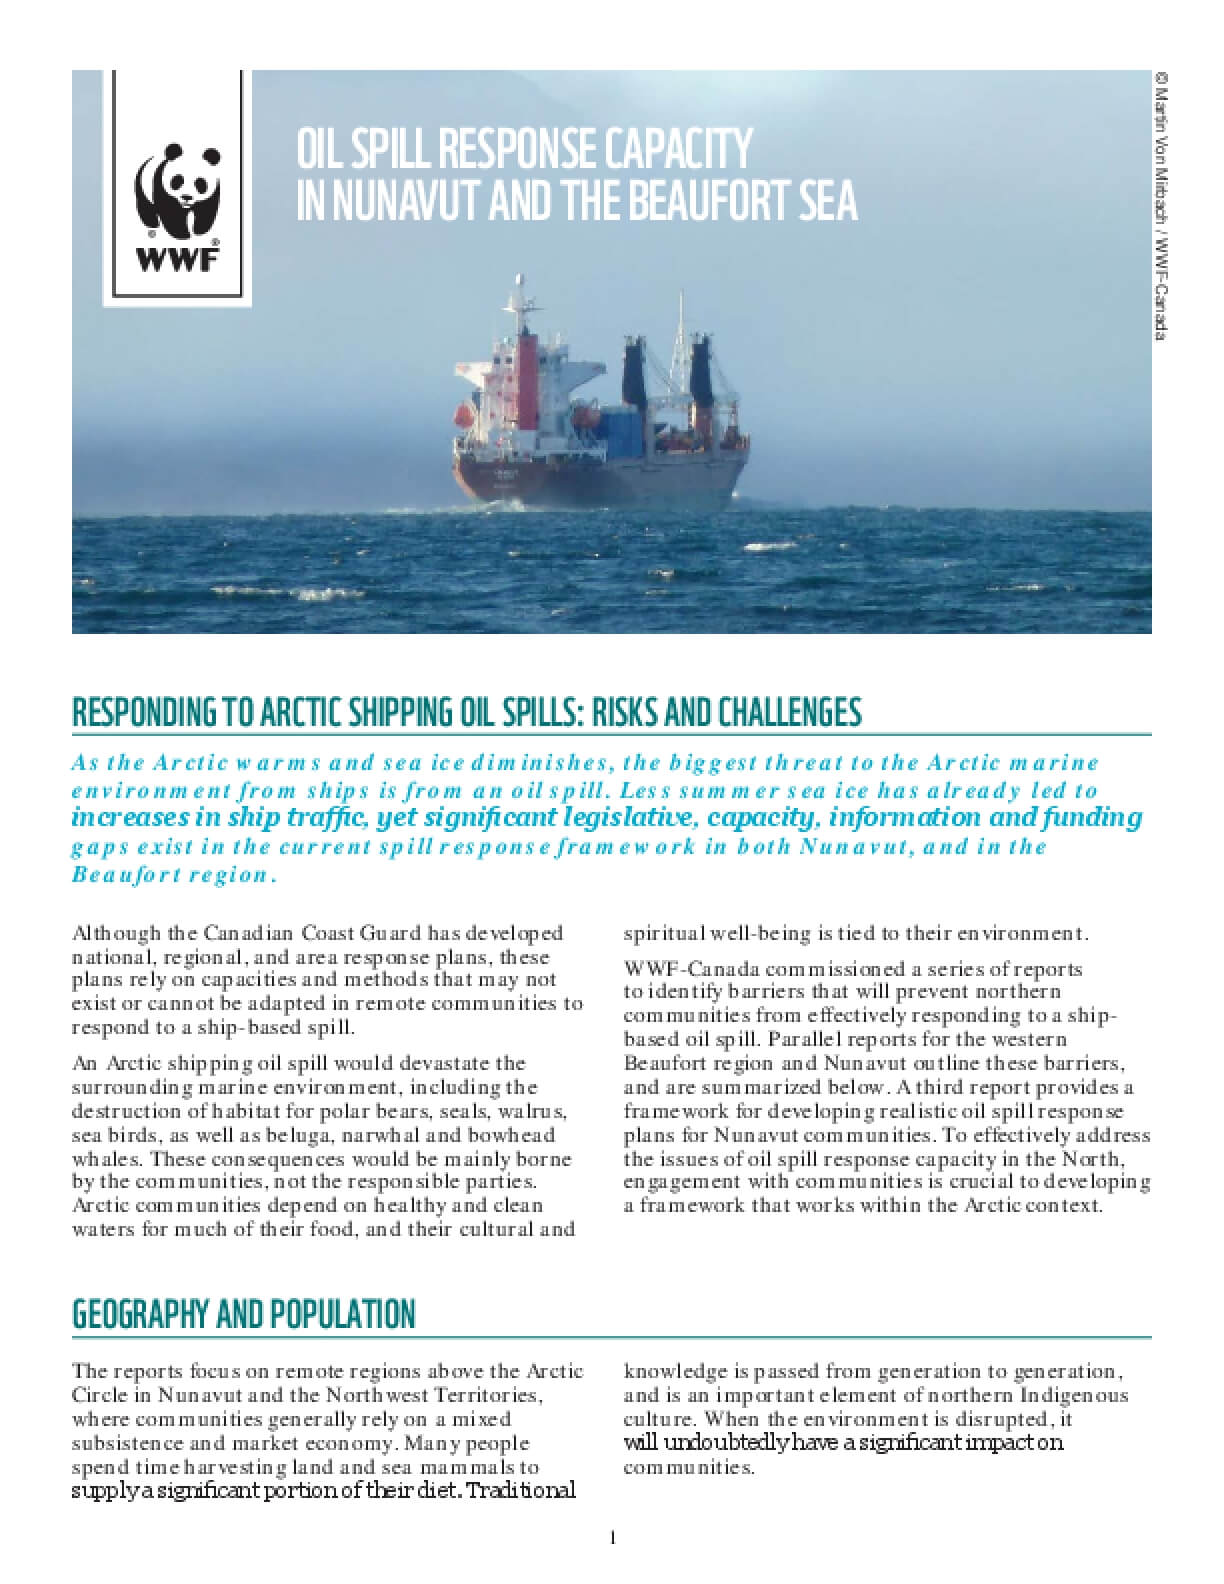 Oil Spill Response Capacity in Nunavut and The Beaufort Sea